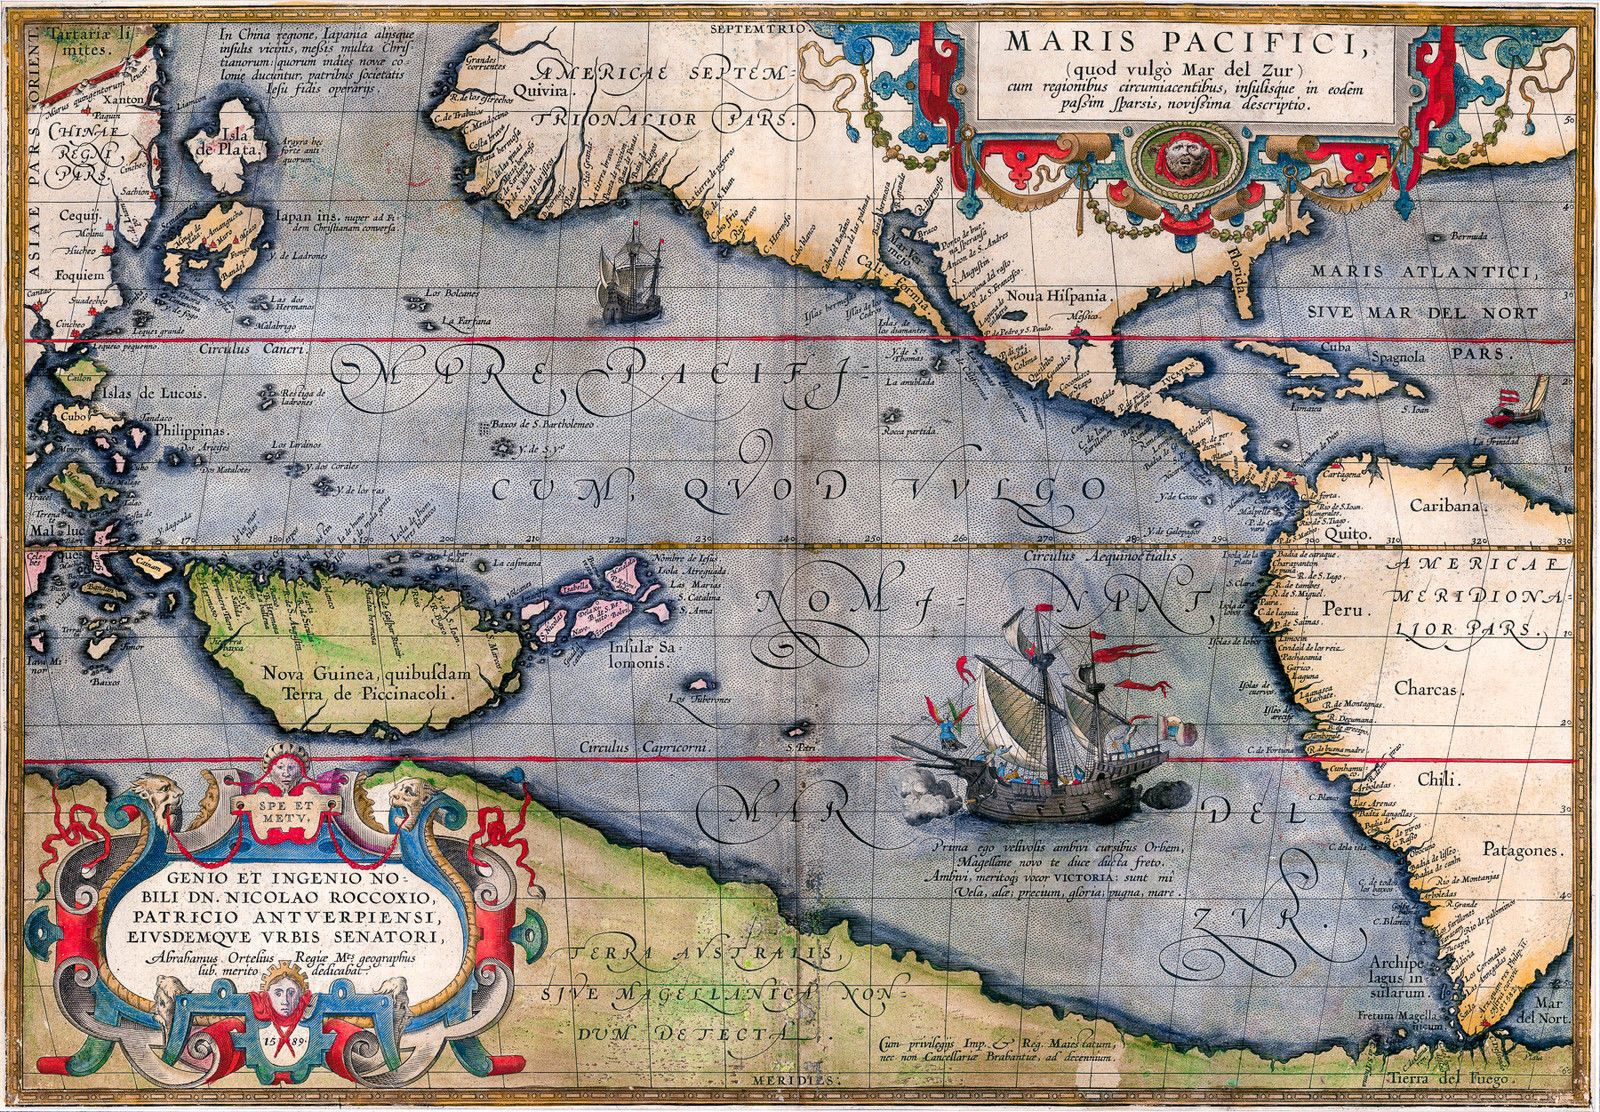 Details about antique old map of the pacific vintage 1589 fade details about antique old map of the pacific vintage 1589 fade resistant hd gumiabroncs Images